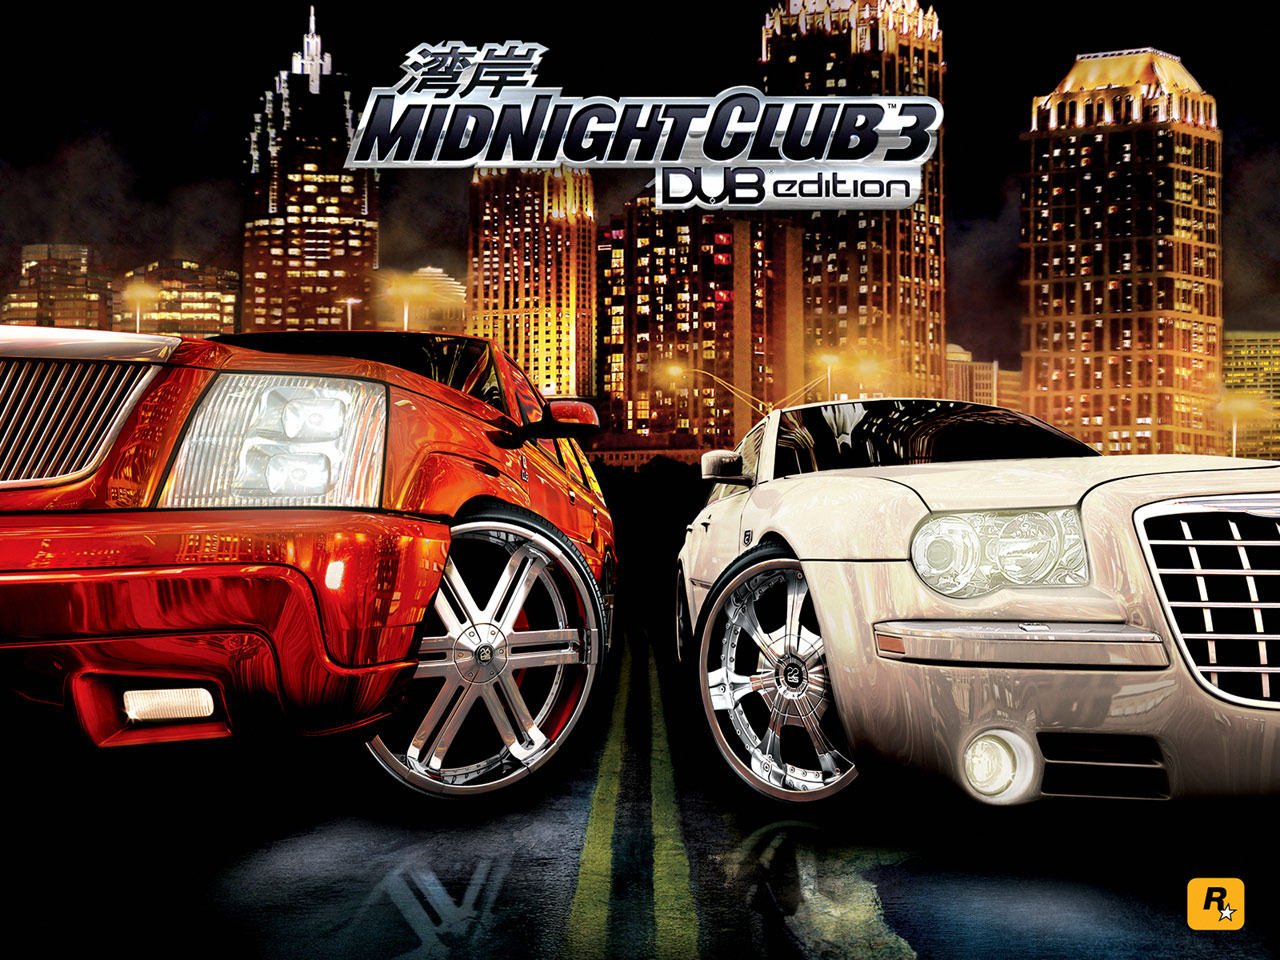 Midnight Club 3 DUB Edition Top 10 Best Car Racing Games to Play in 2011